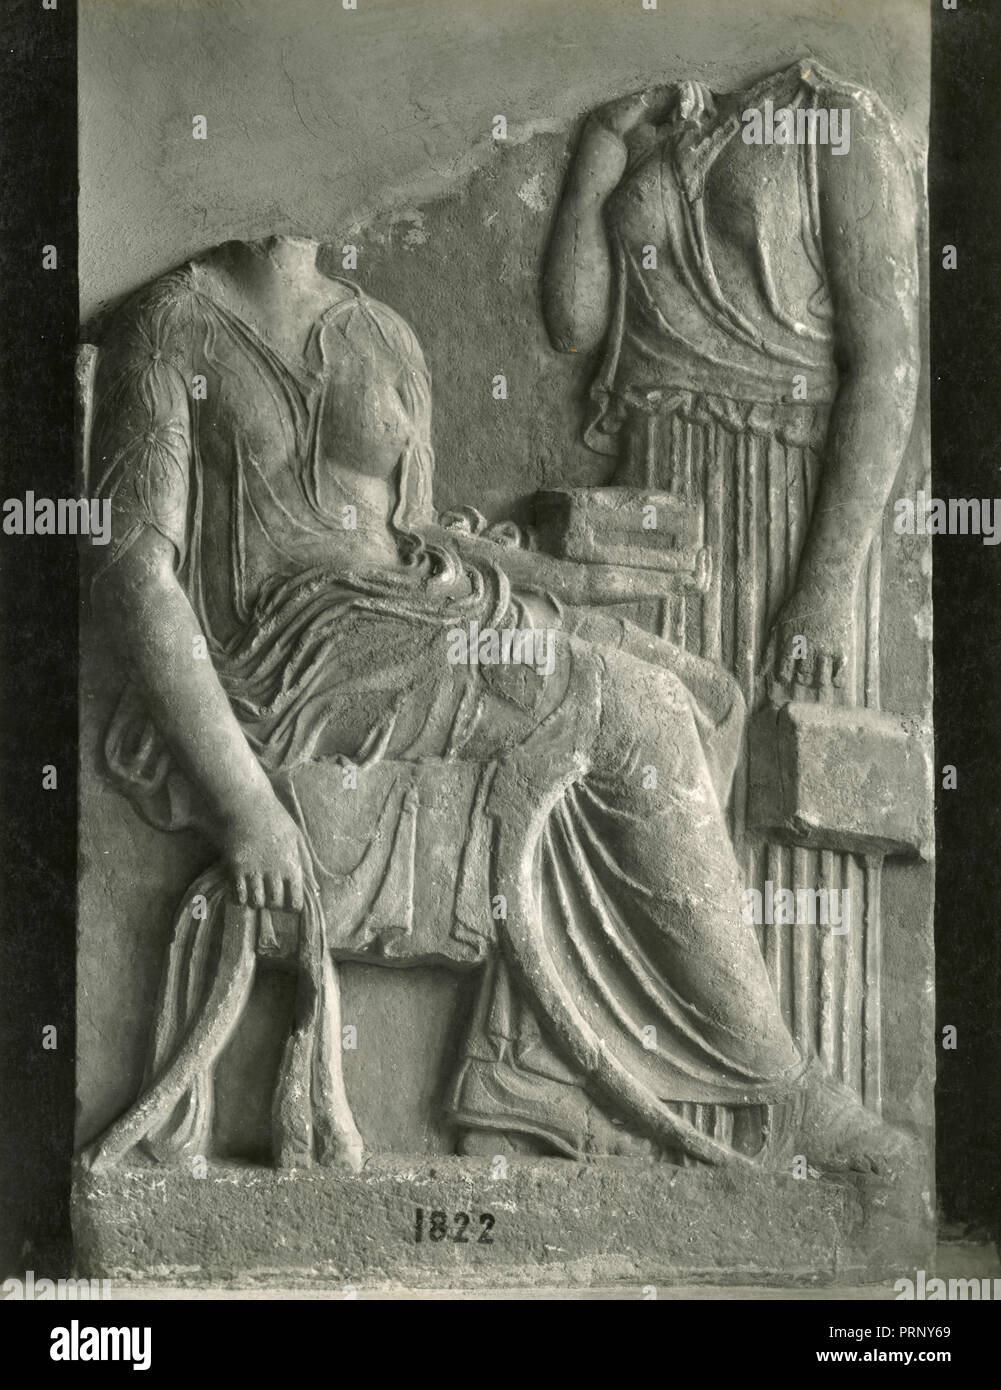 Funerary stele found in Athens, Greece 1930s - Stock Image